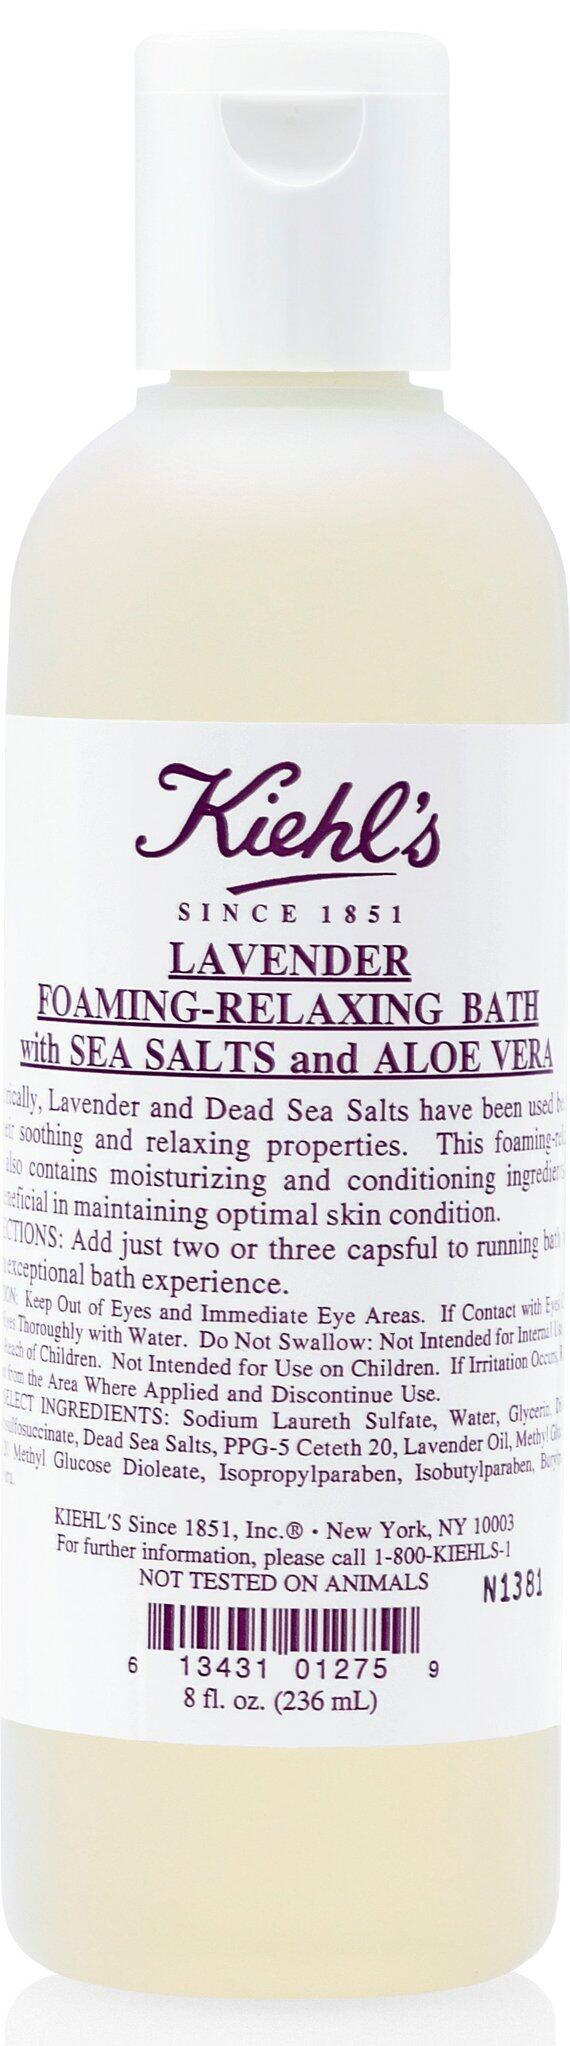 Kiehl's Lavender Foaming-Relaxing Bath with Sea Salts and Aloe Vera($195)含薰衣草及死海